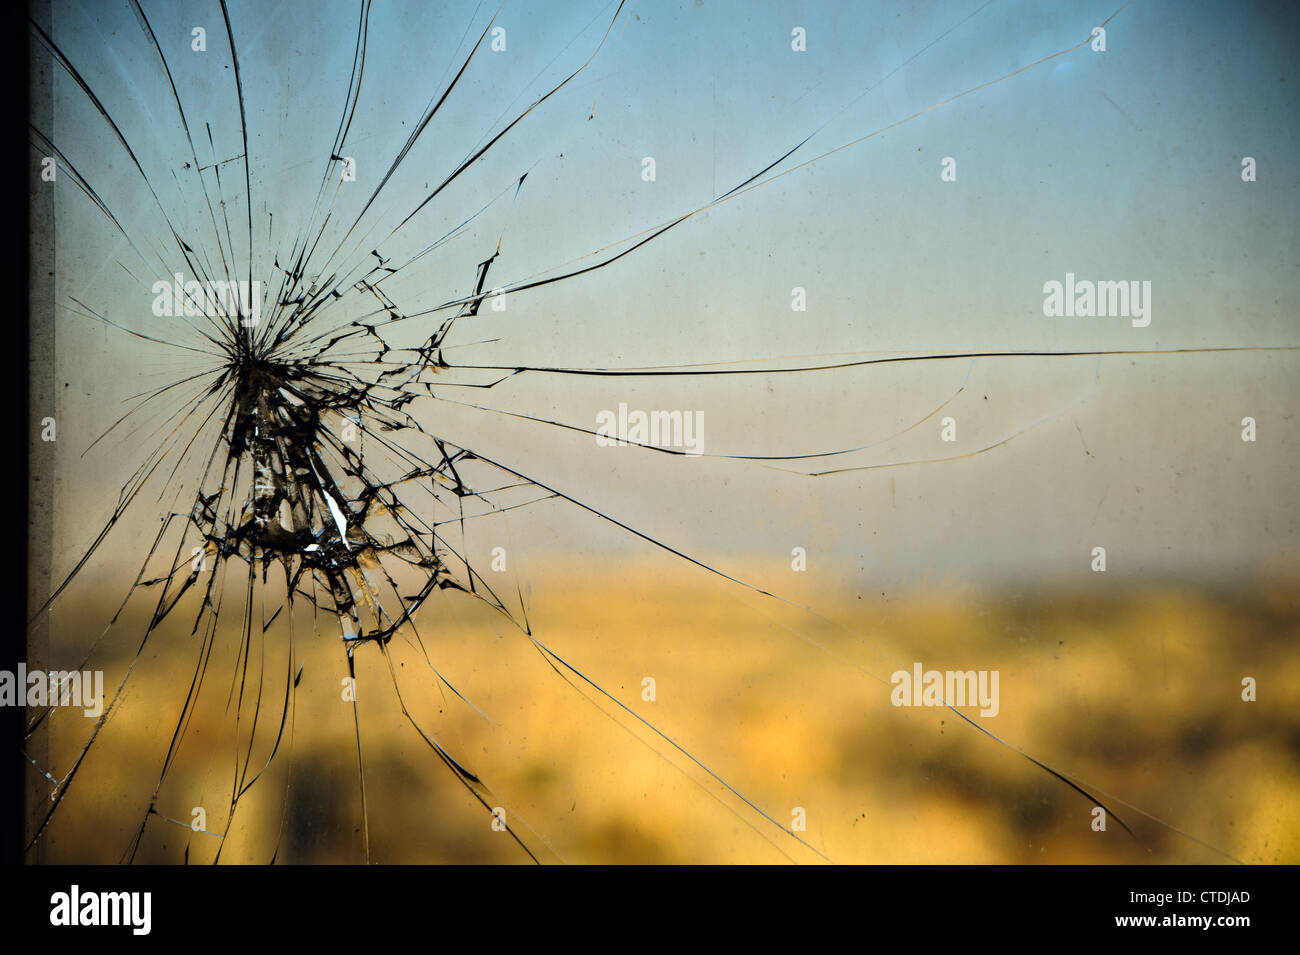 Broken window, cracked glass on urban background - Stock Image